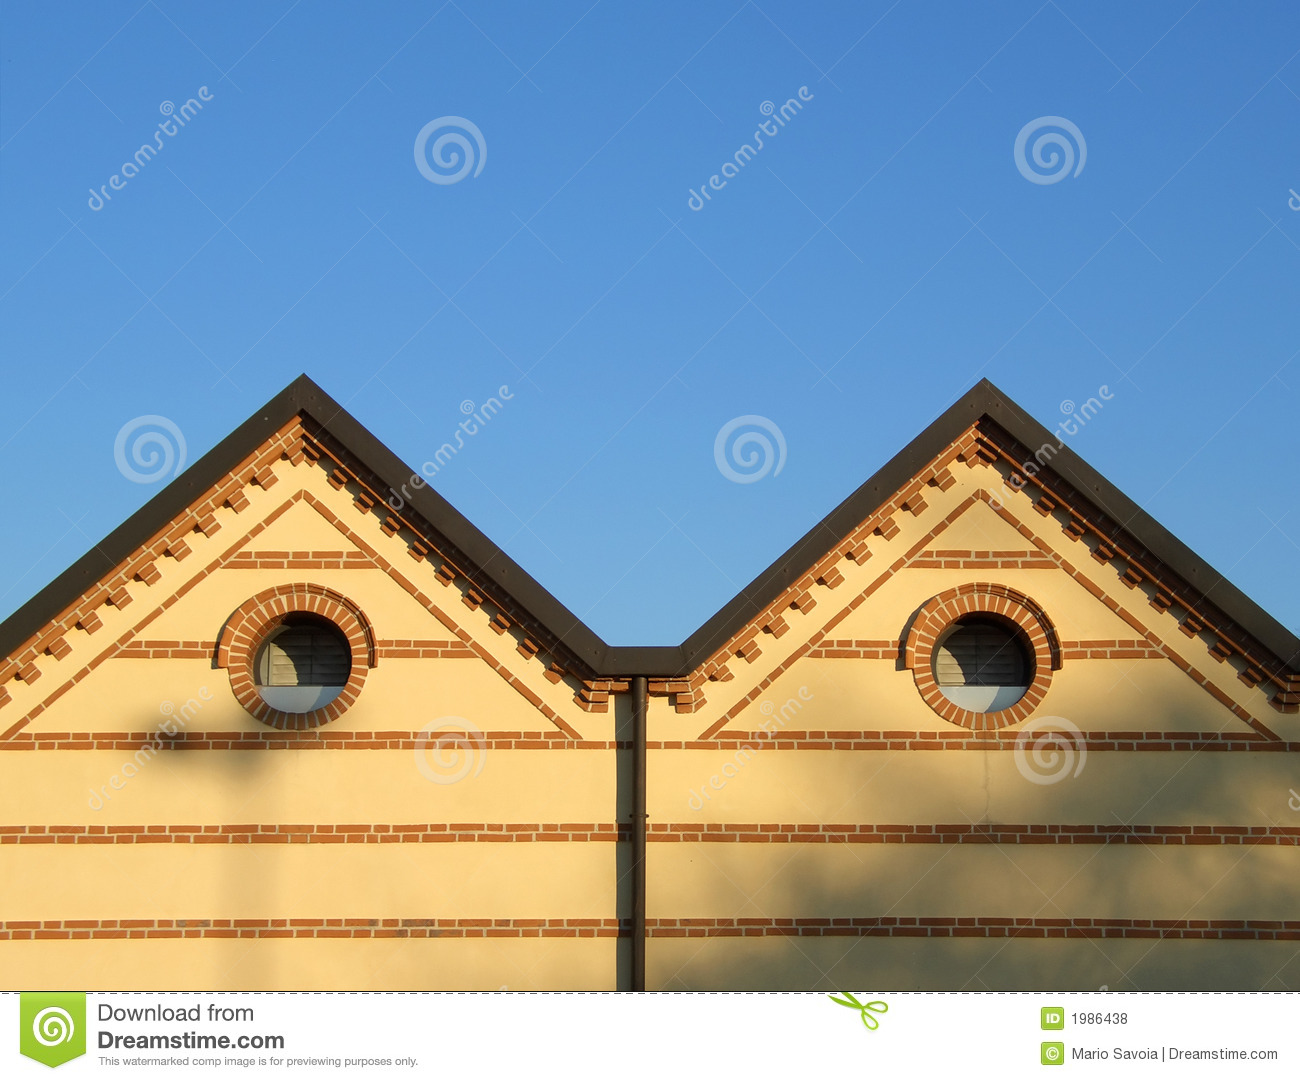 Double Hip Roof And Bricks Stock Photo Image Of Roof 1986438